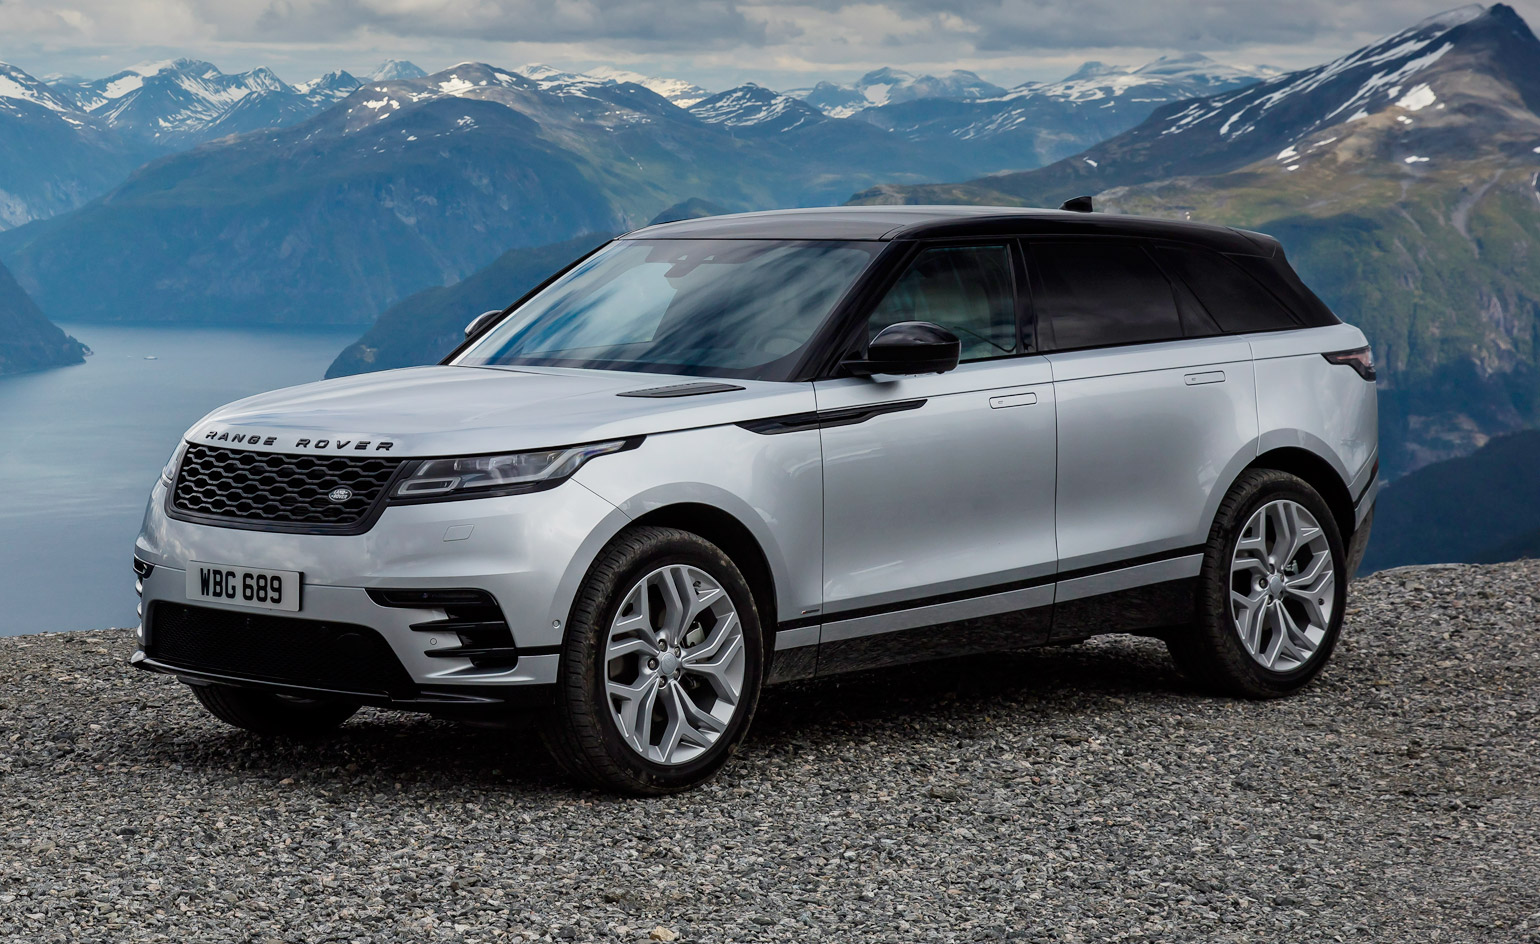 Range Rover Velar: Quiet Confidence In A Handsome Package